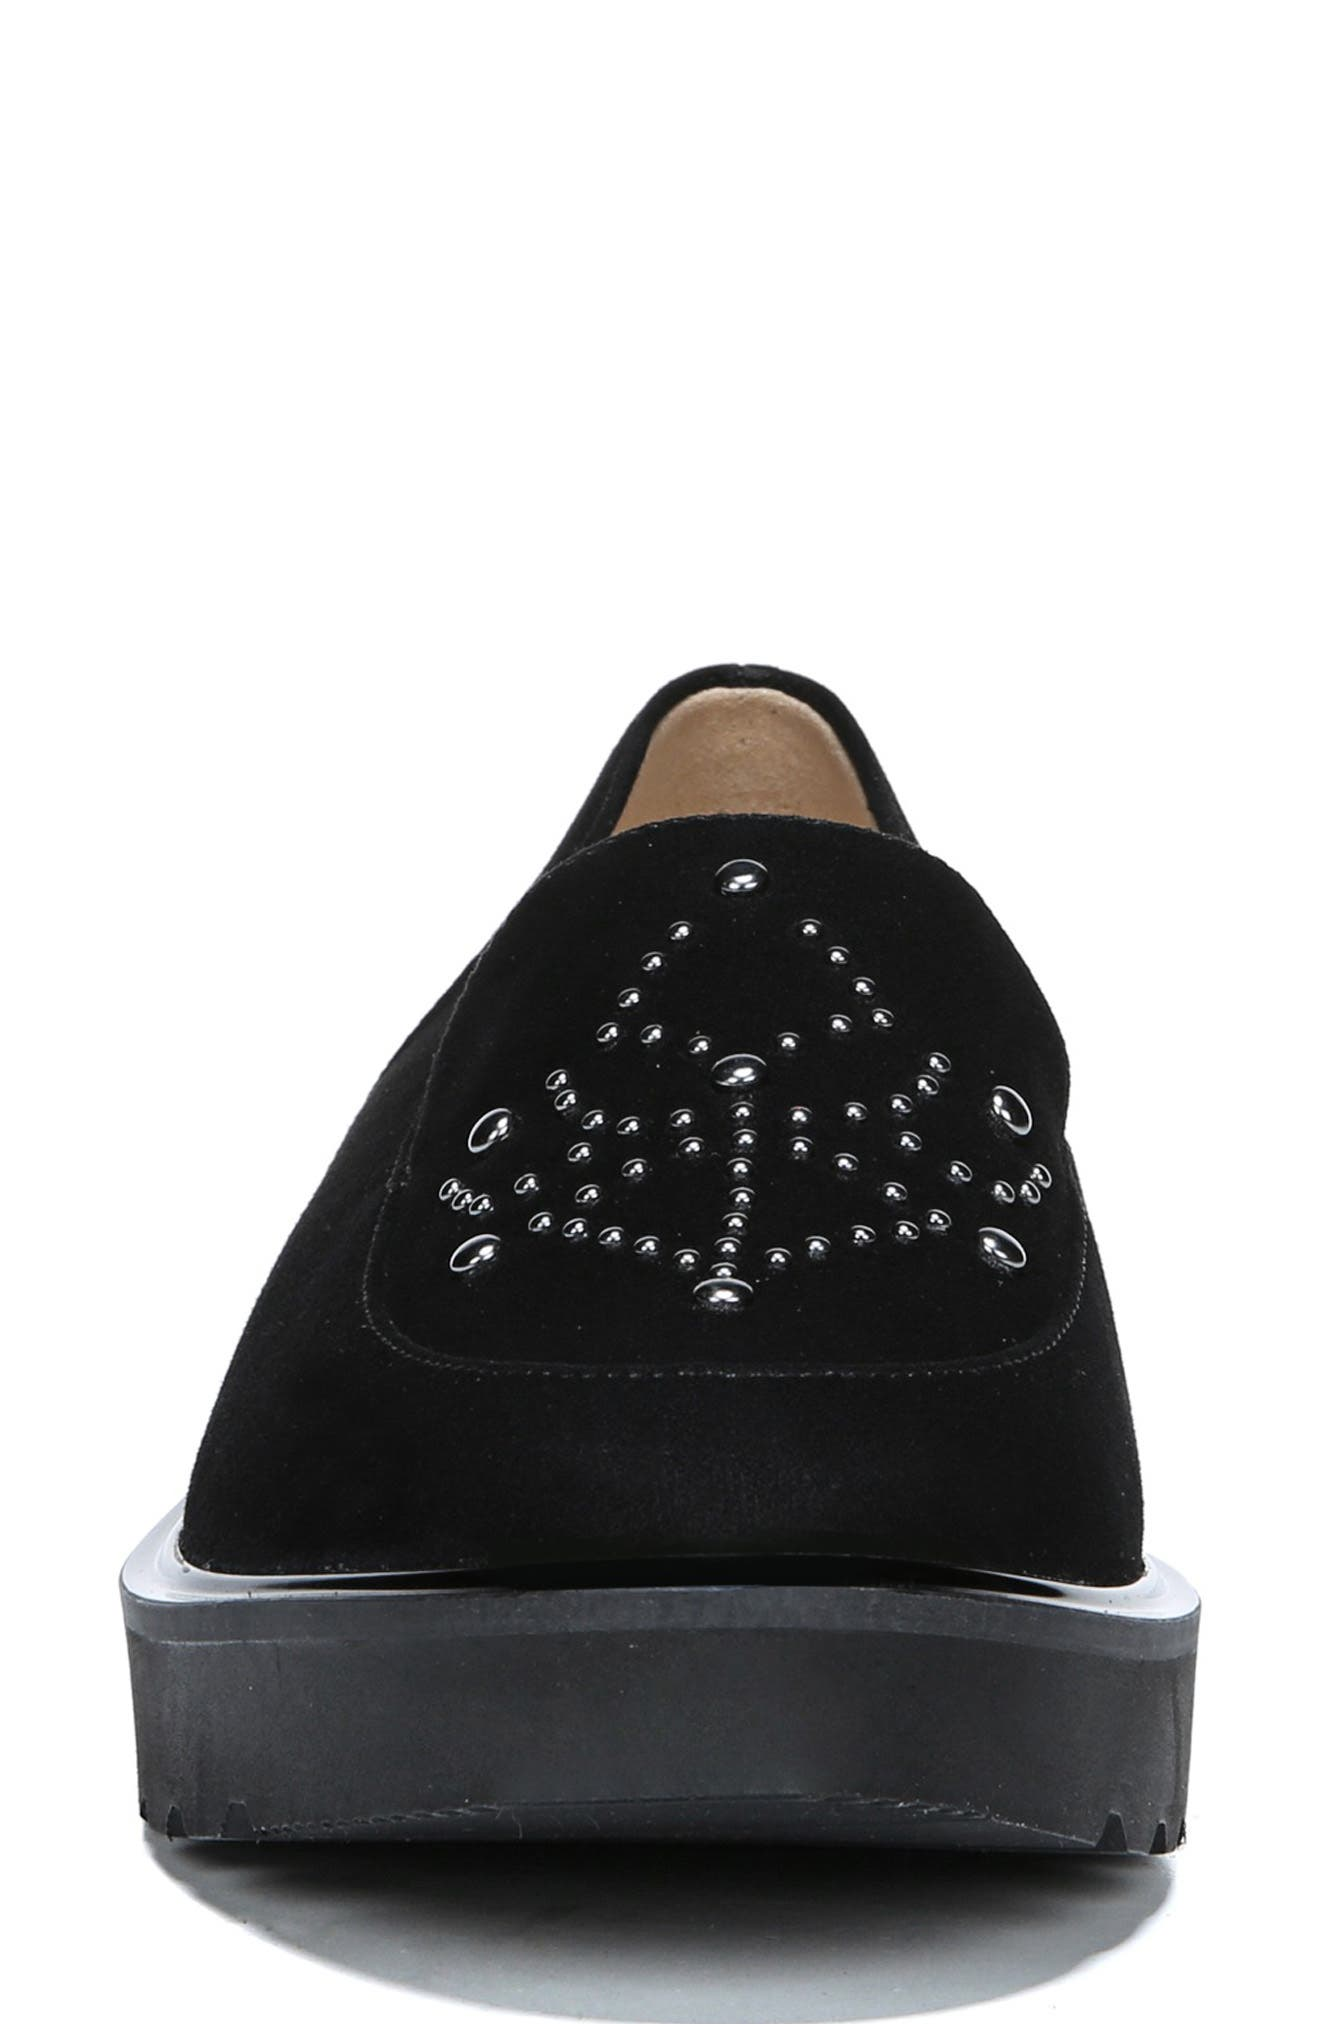 Andie Loafer,                             Alternate thumbnail 3, color,                             BLACK SUEDE